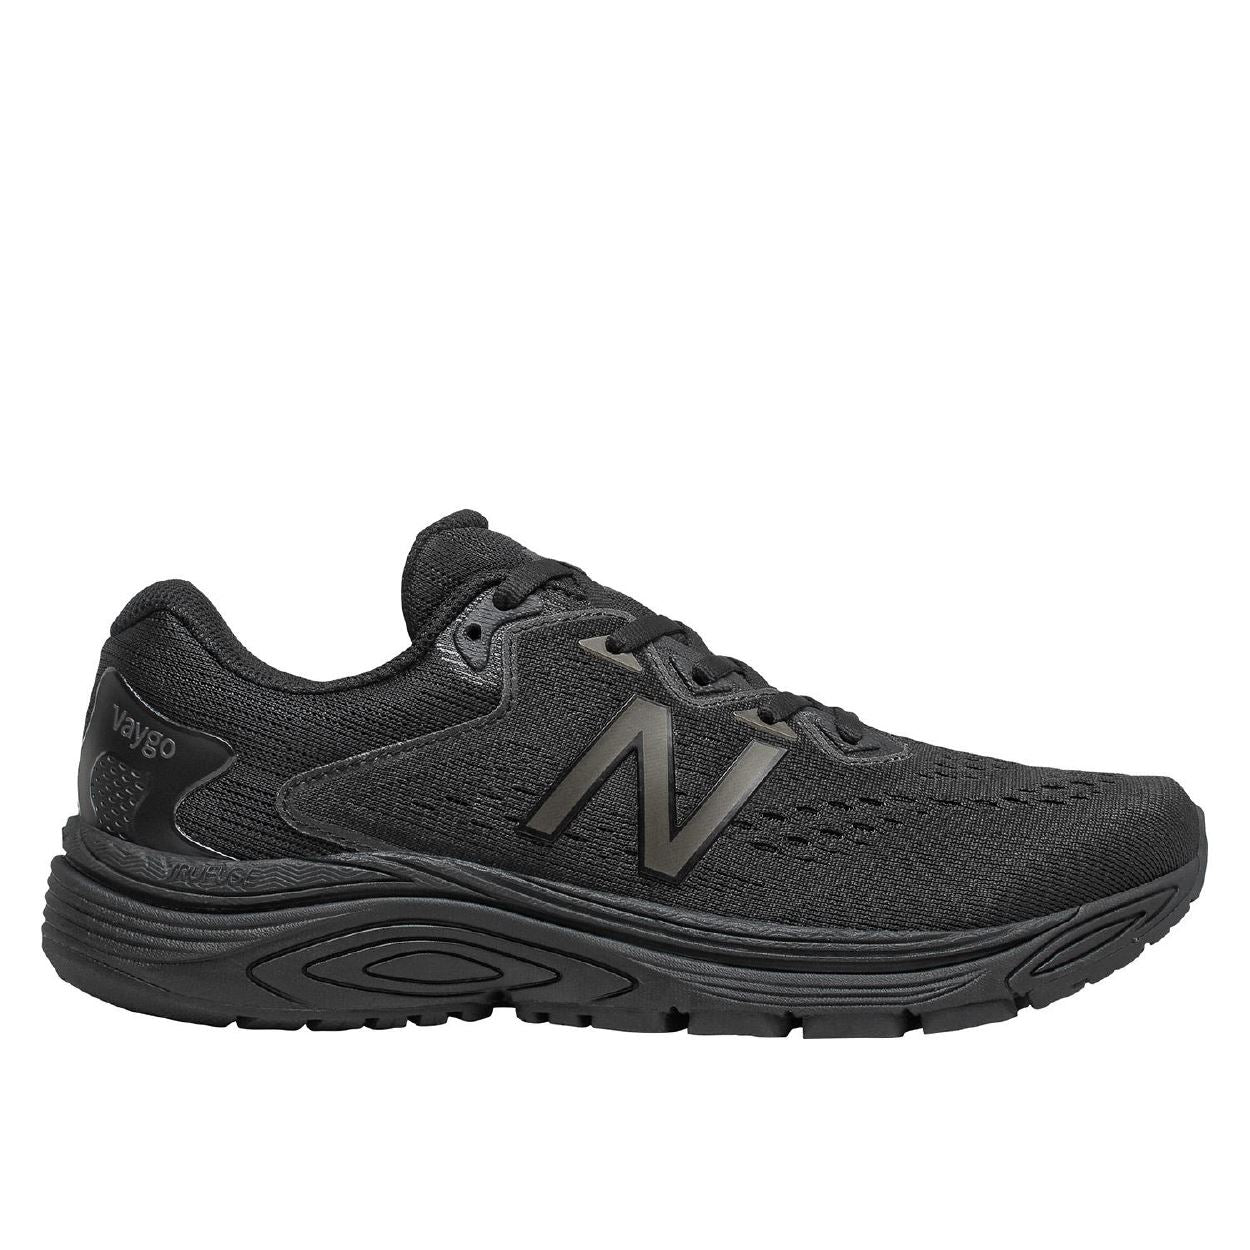 New Balance Women's Vaygo Running Shoe - Black/Black SP-Footwear-Womens New Balance